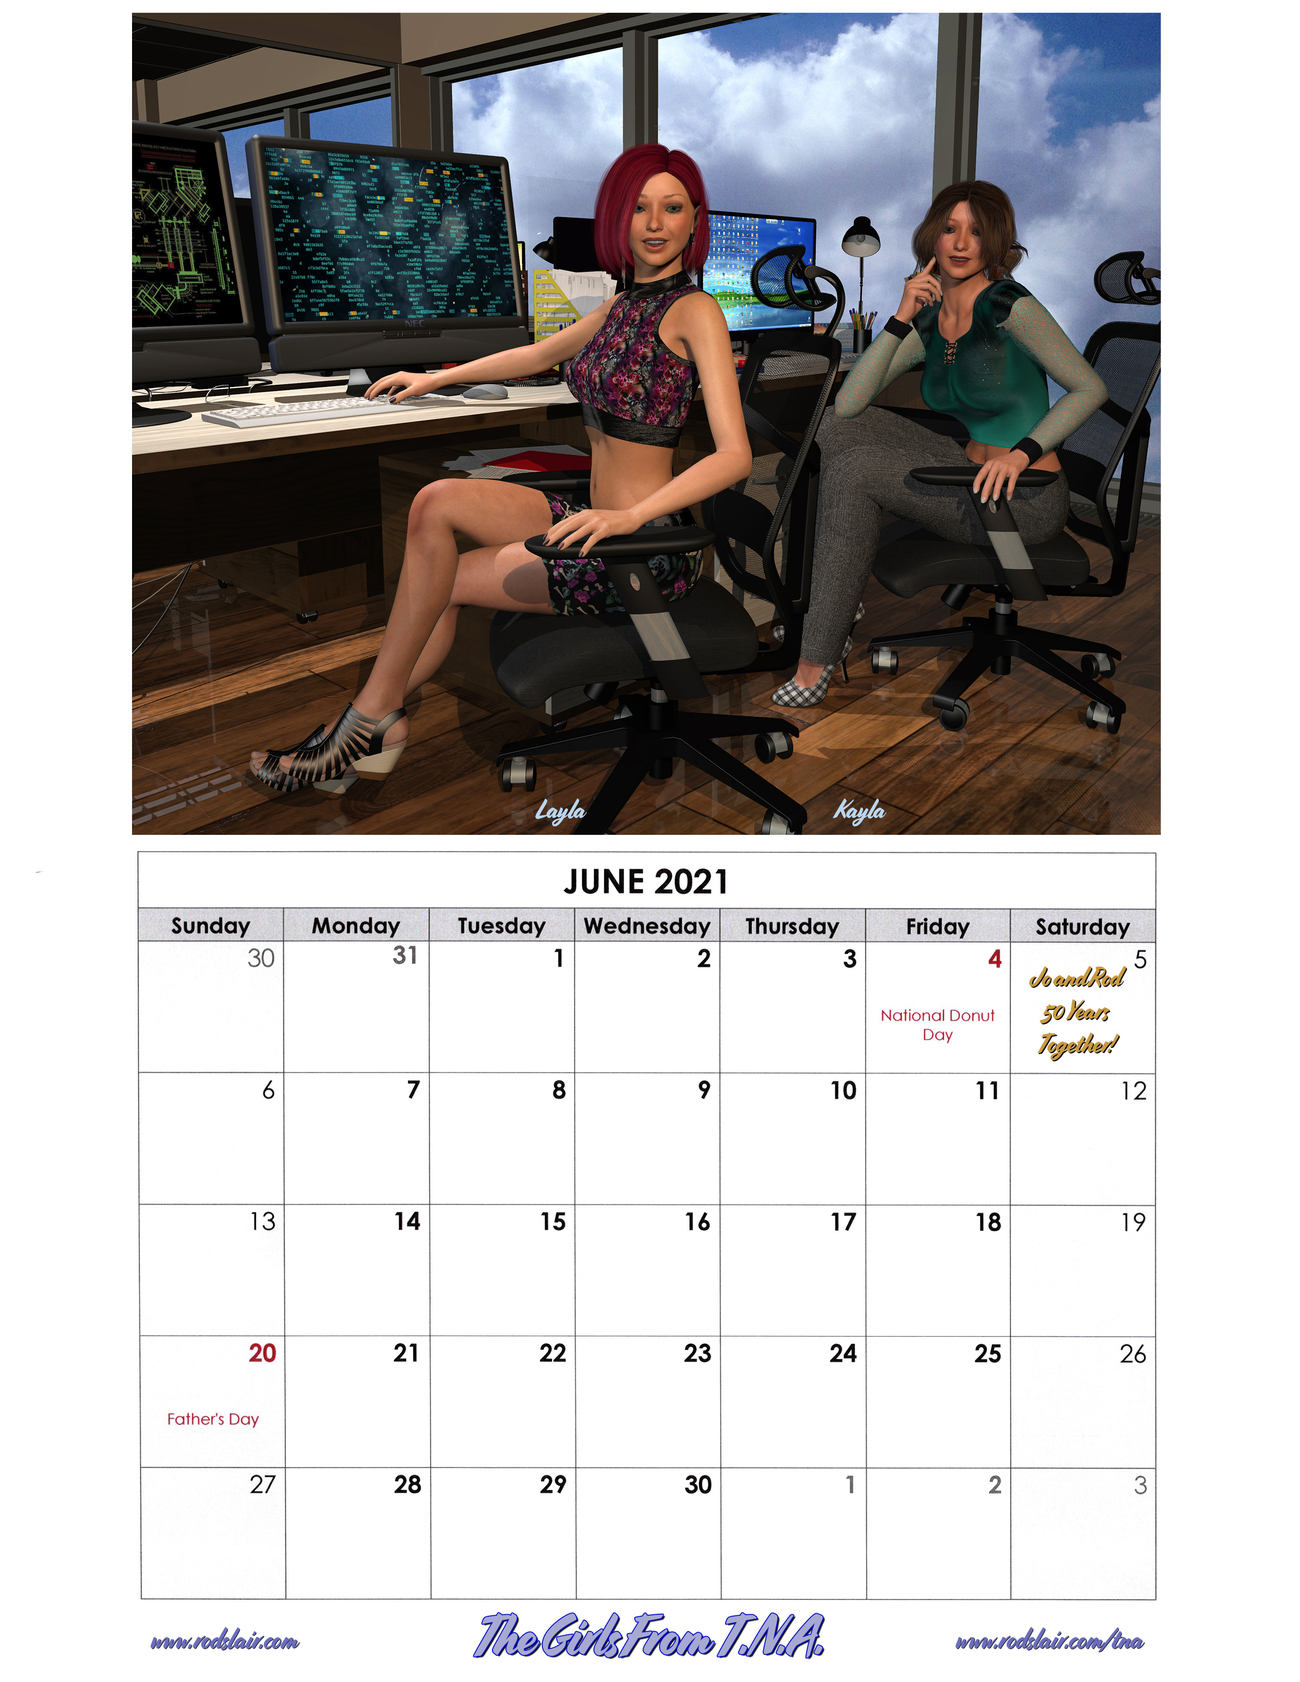 Girls From T.N.A. 2021 Calendar - June by RodS